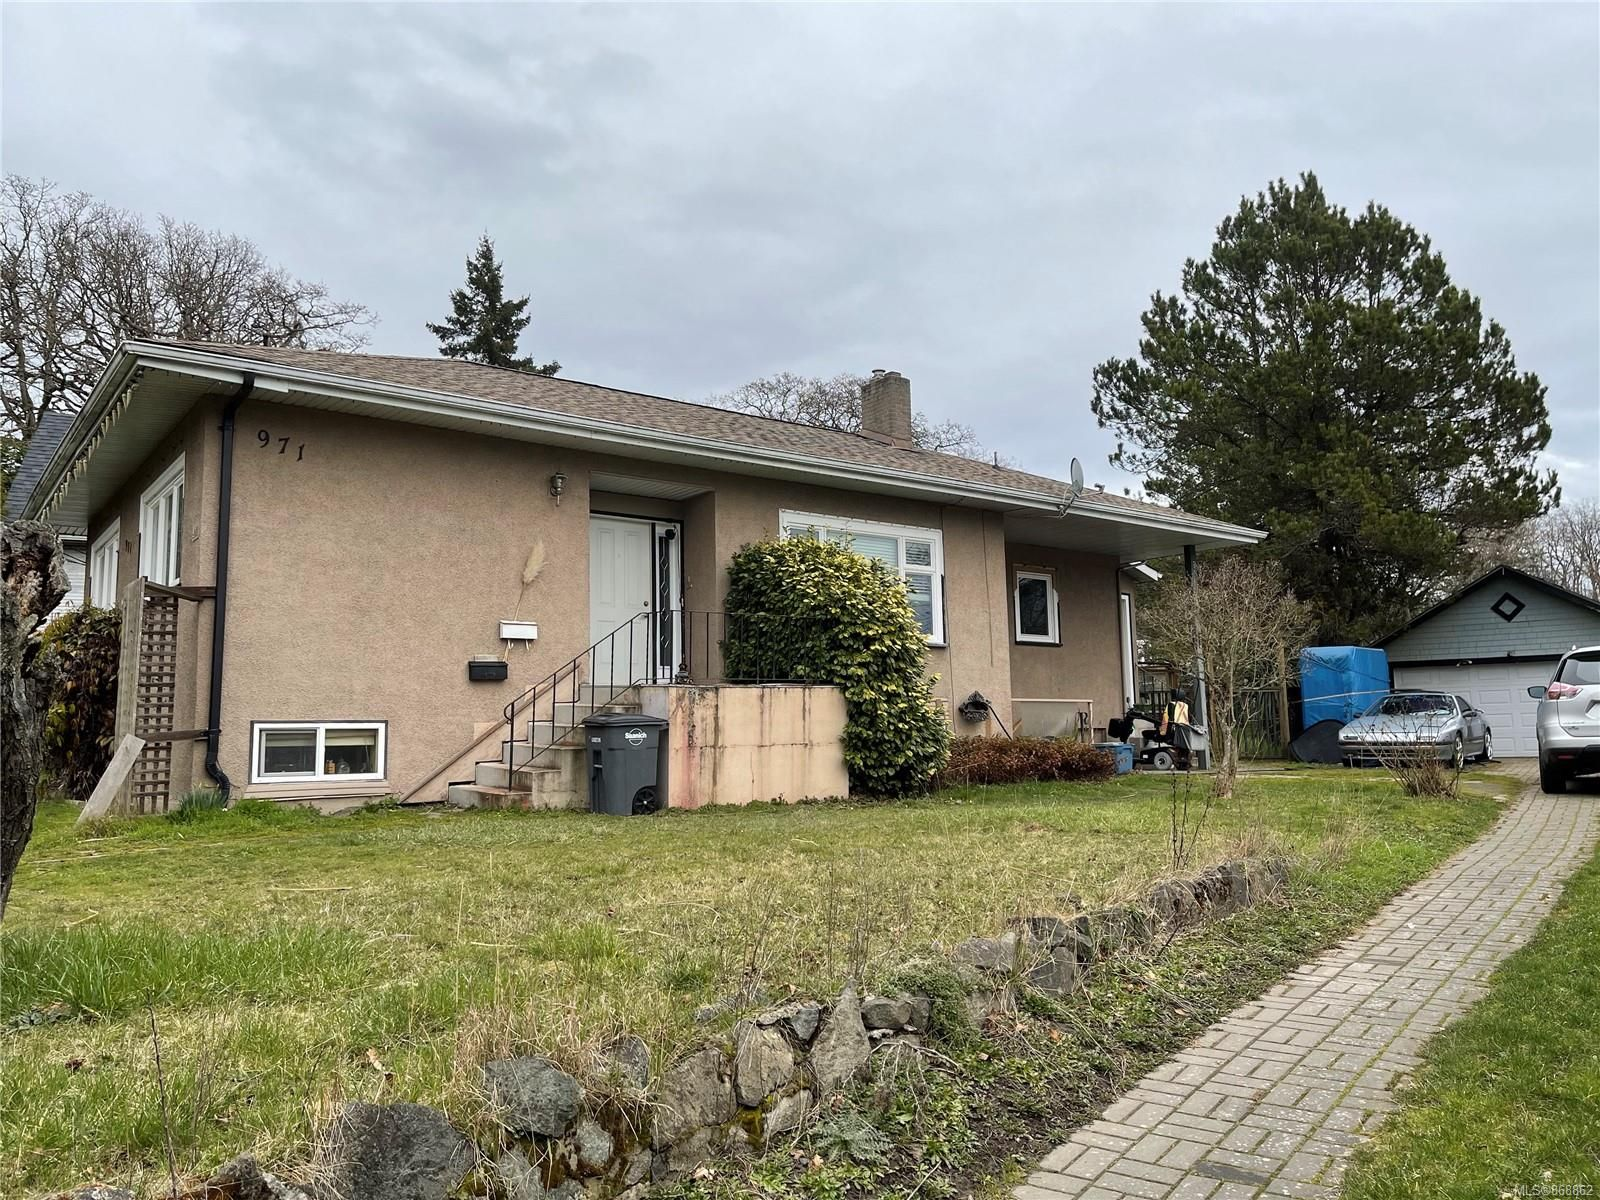 Main Photo: 971 Cloverdale Ave in : SE Quadra House for sale (Saanich East)  : MLS®# 868862